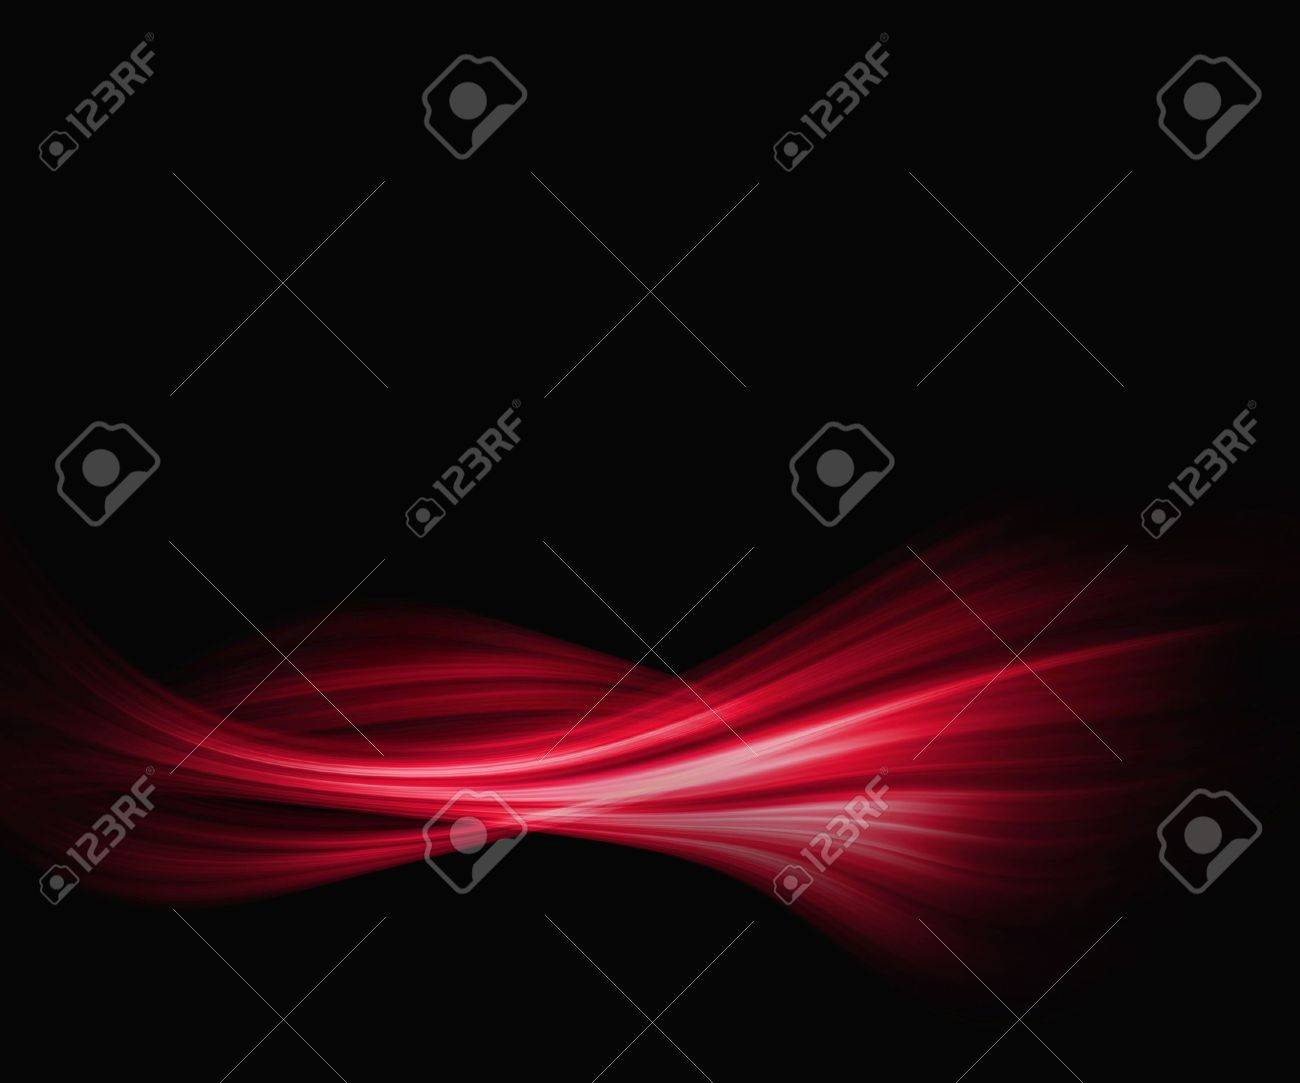 Red And Black Abstract Wallpaper Background With Wave Pattern